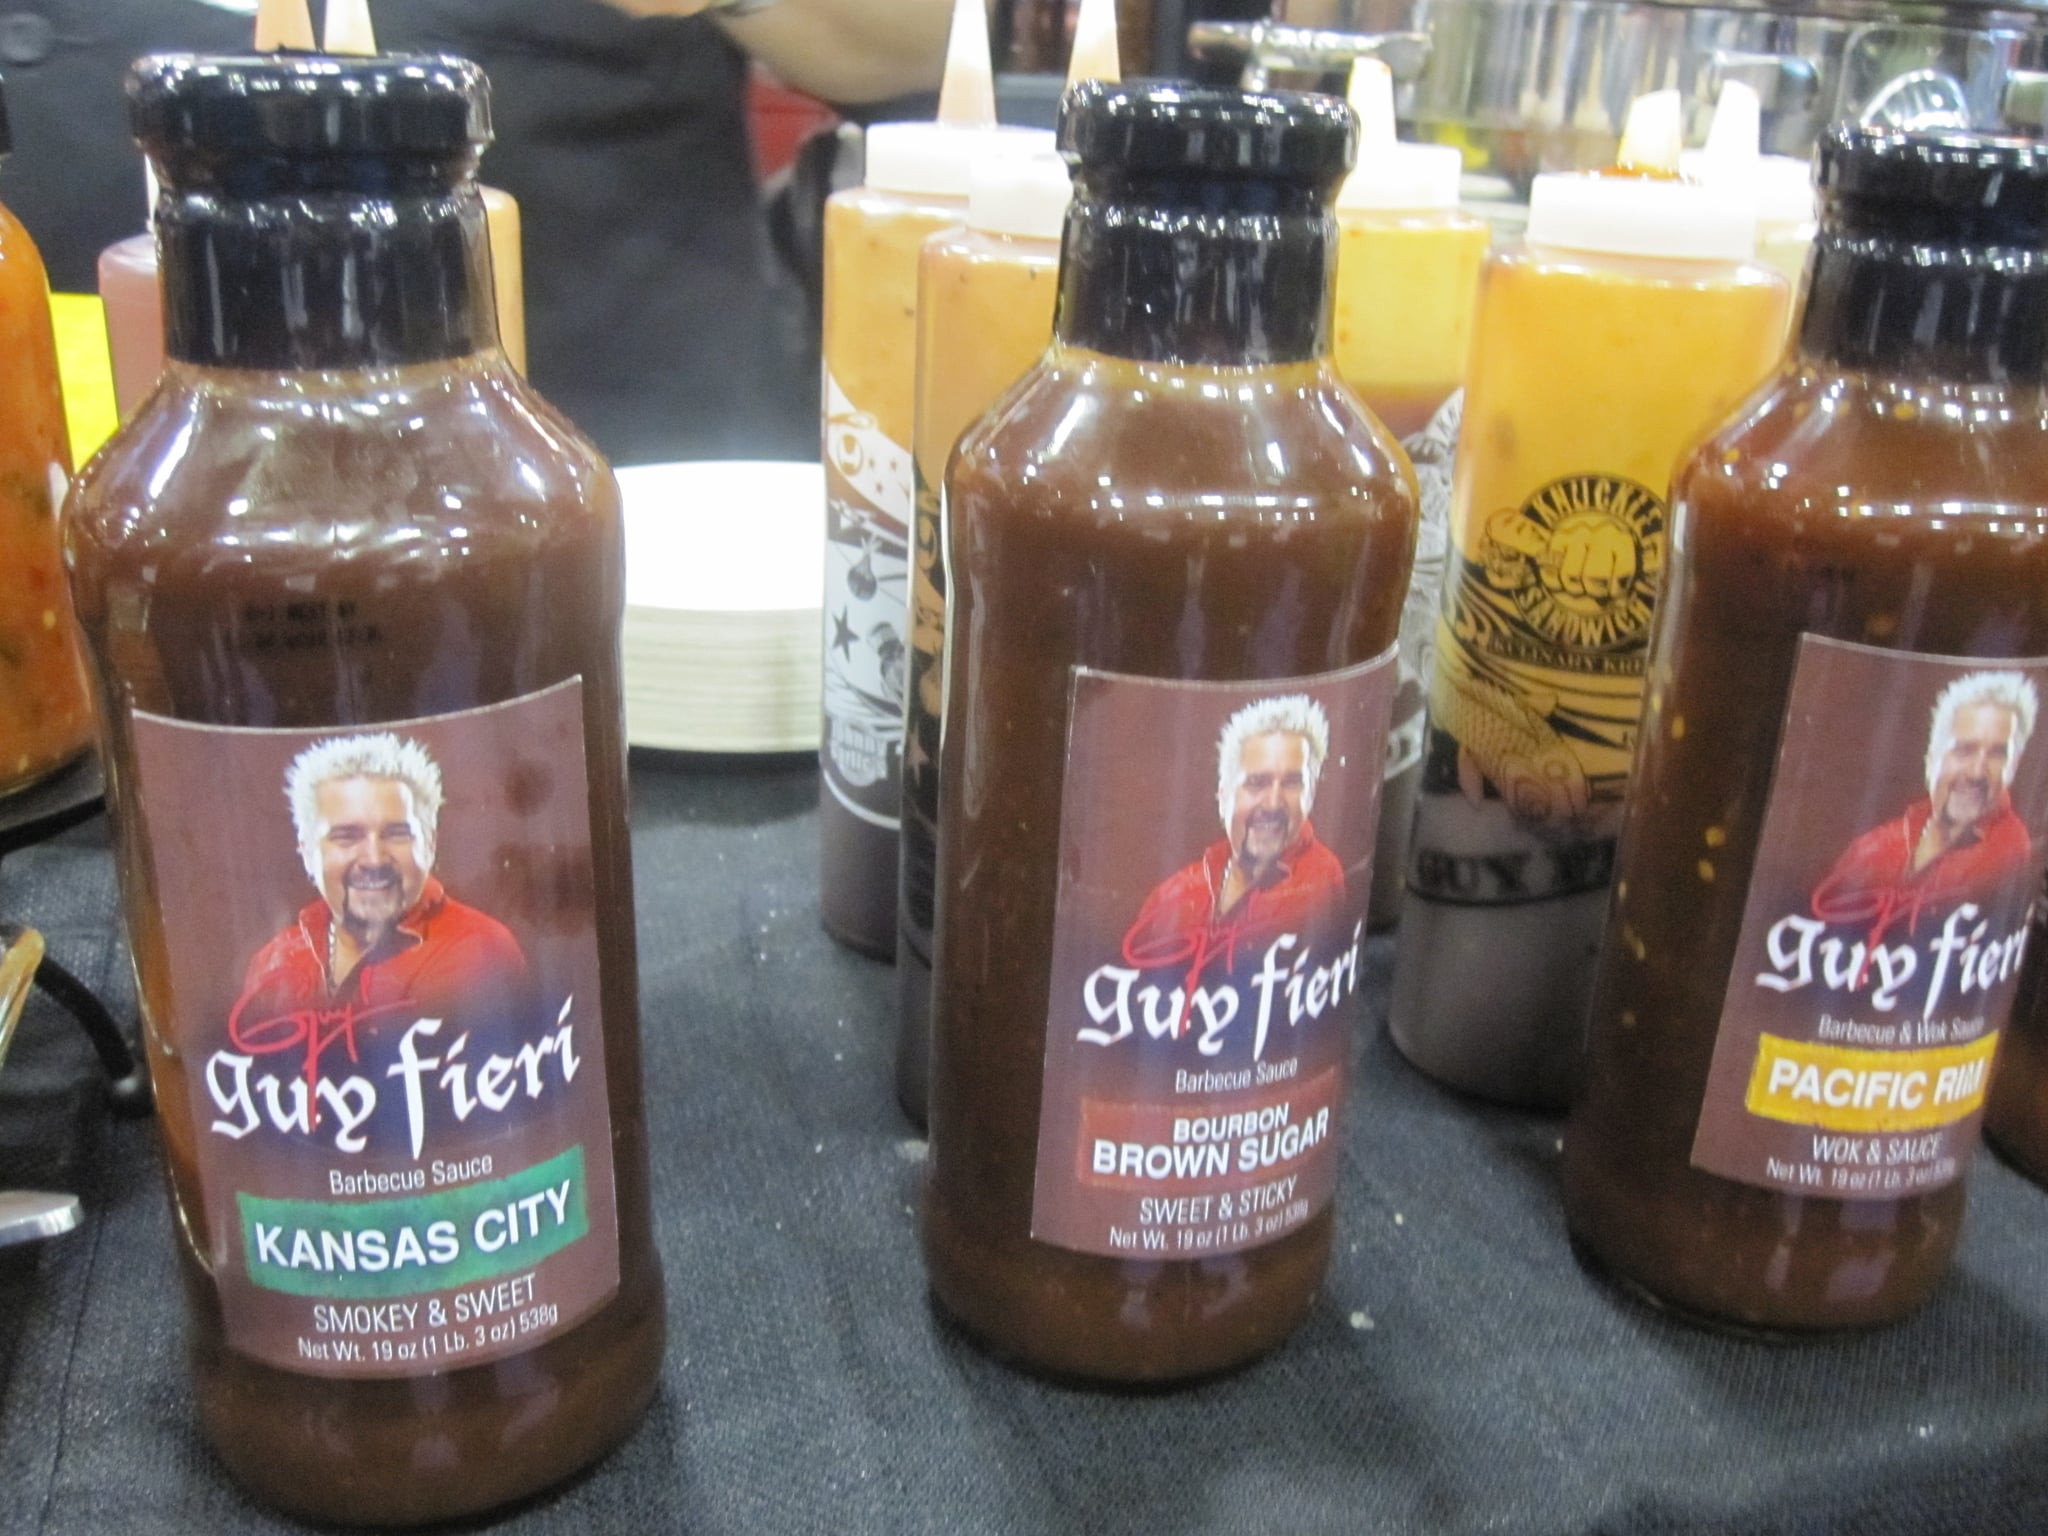 Guy Fieri Bbq Sauce  Guy Fieri Launches Supermarket Line of Barbecue Sauces